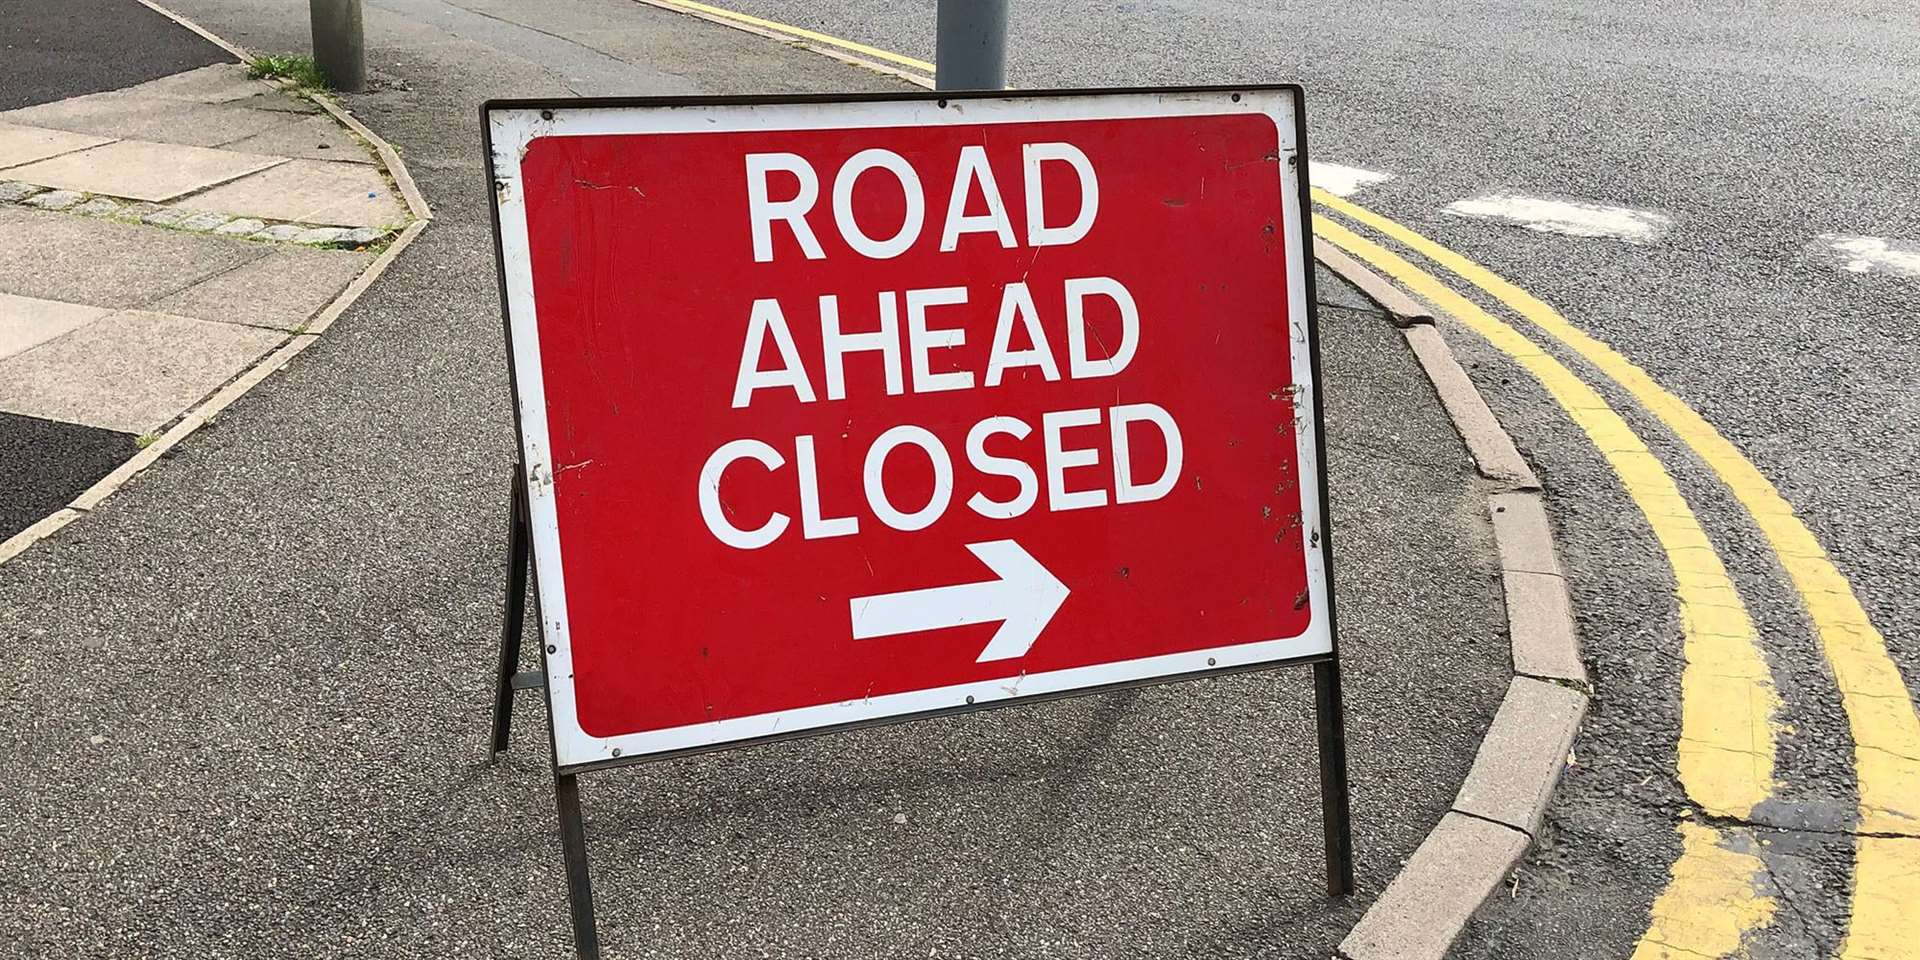 The road works will last for approximately 14 weeks